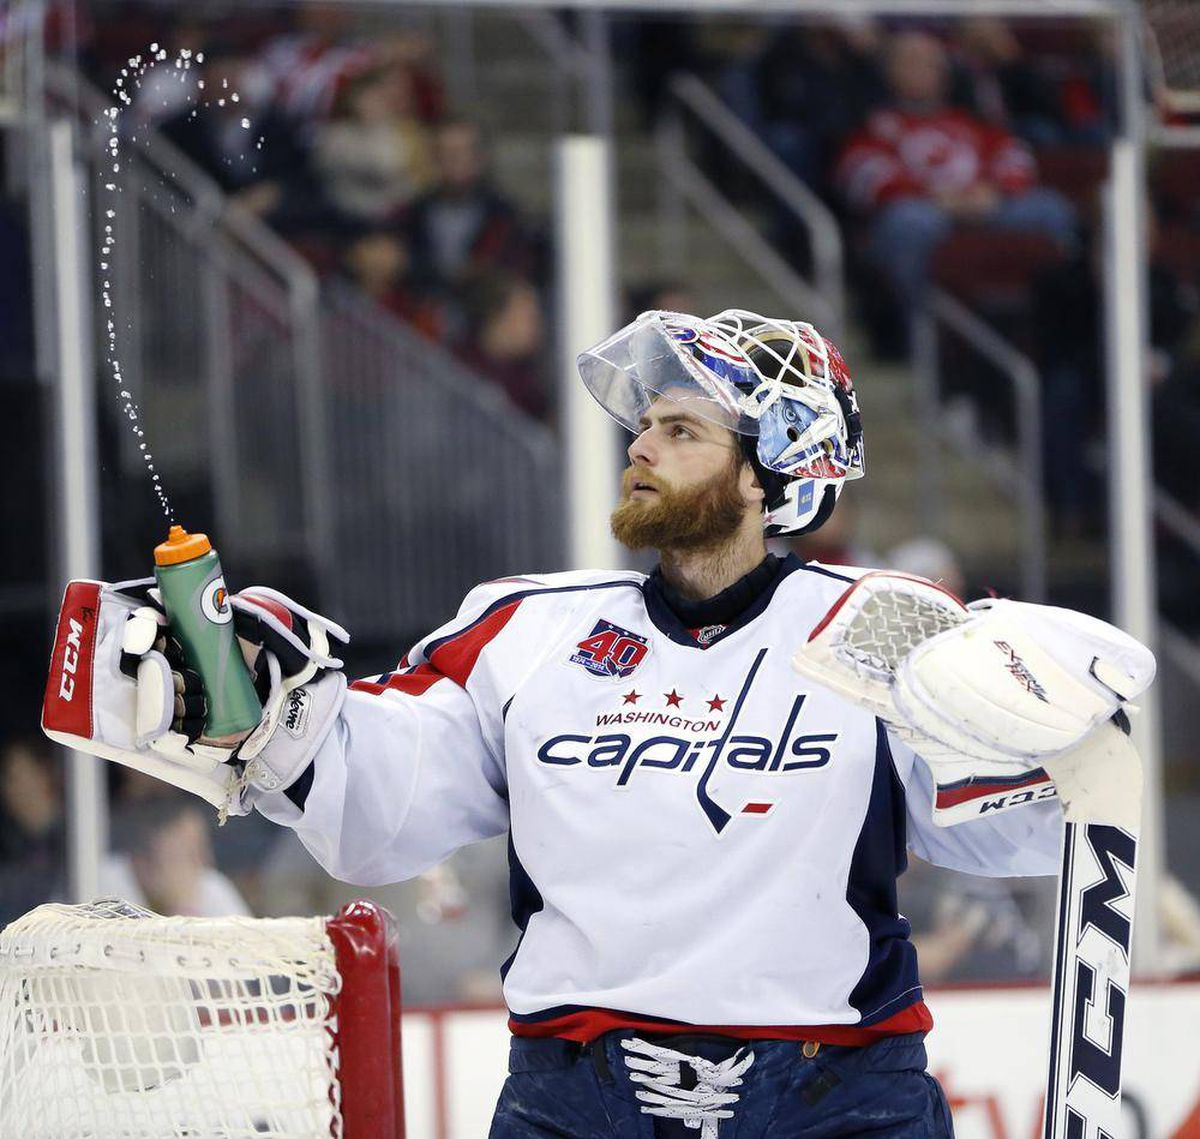 096d8d46fb7 Capitals sign goaltender Braden Holtby to five-year